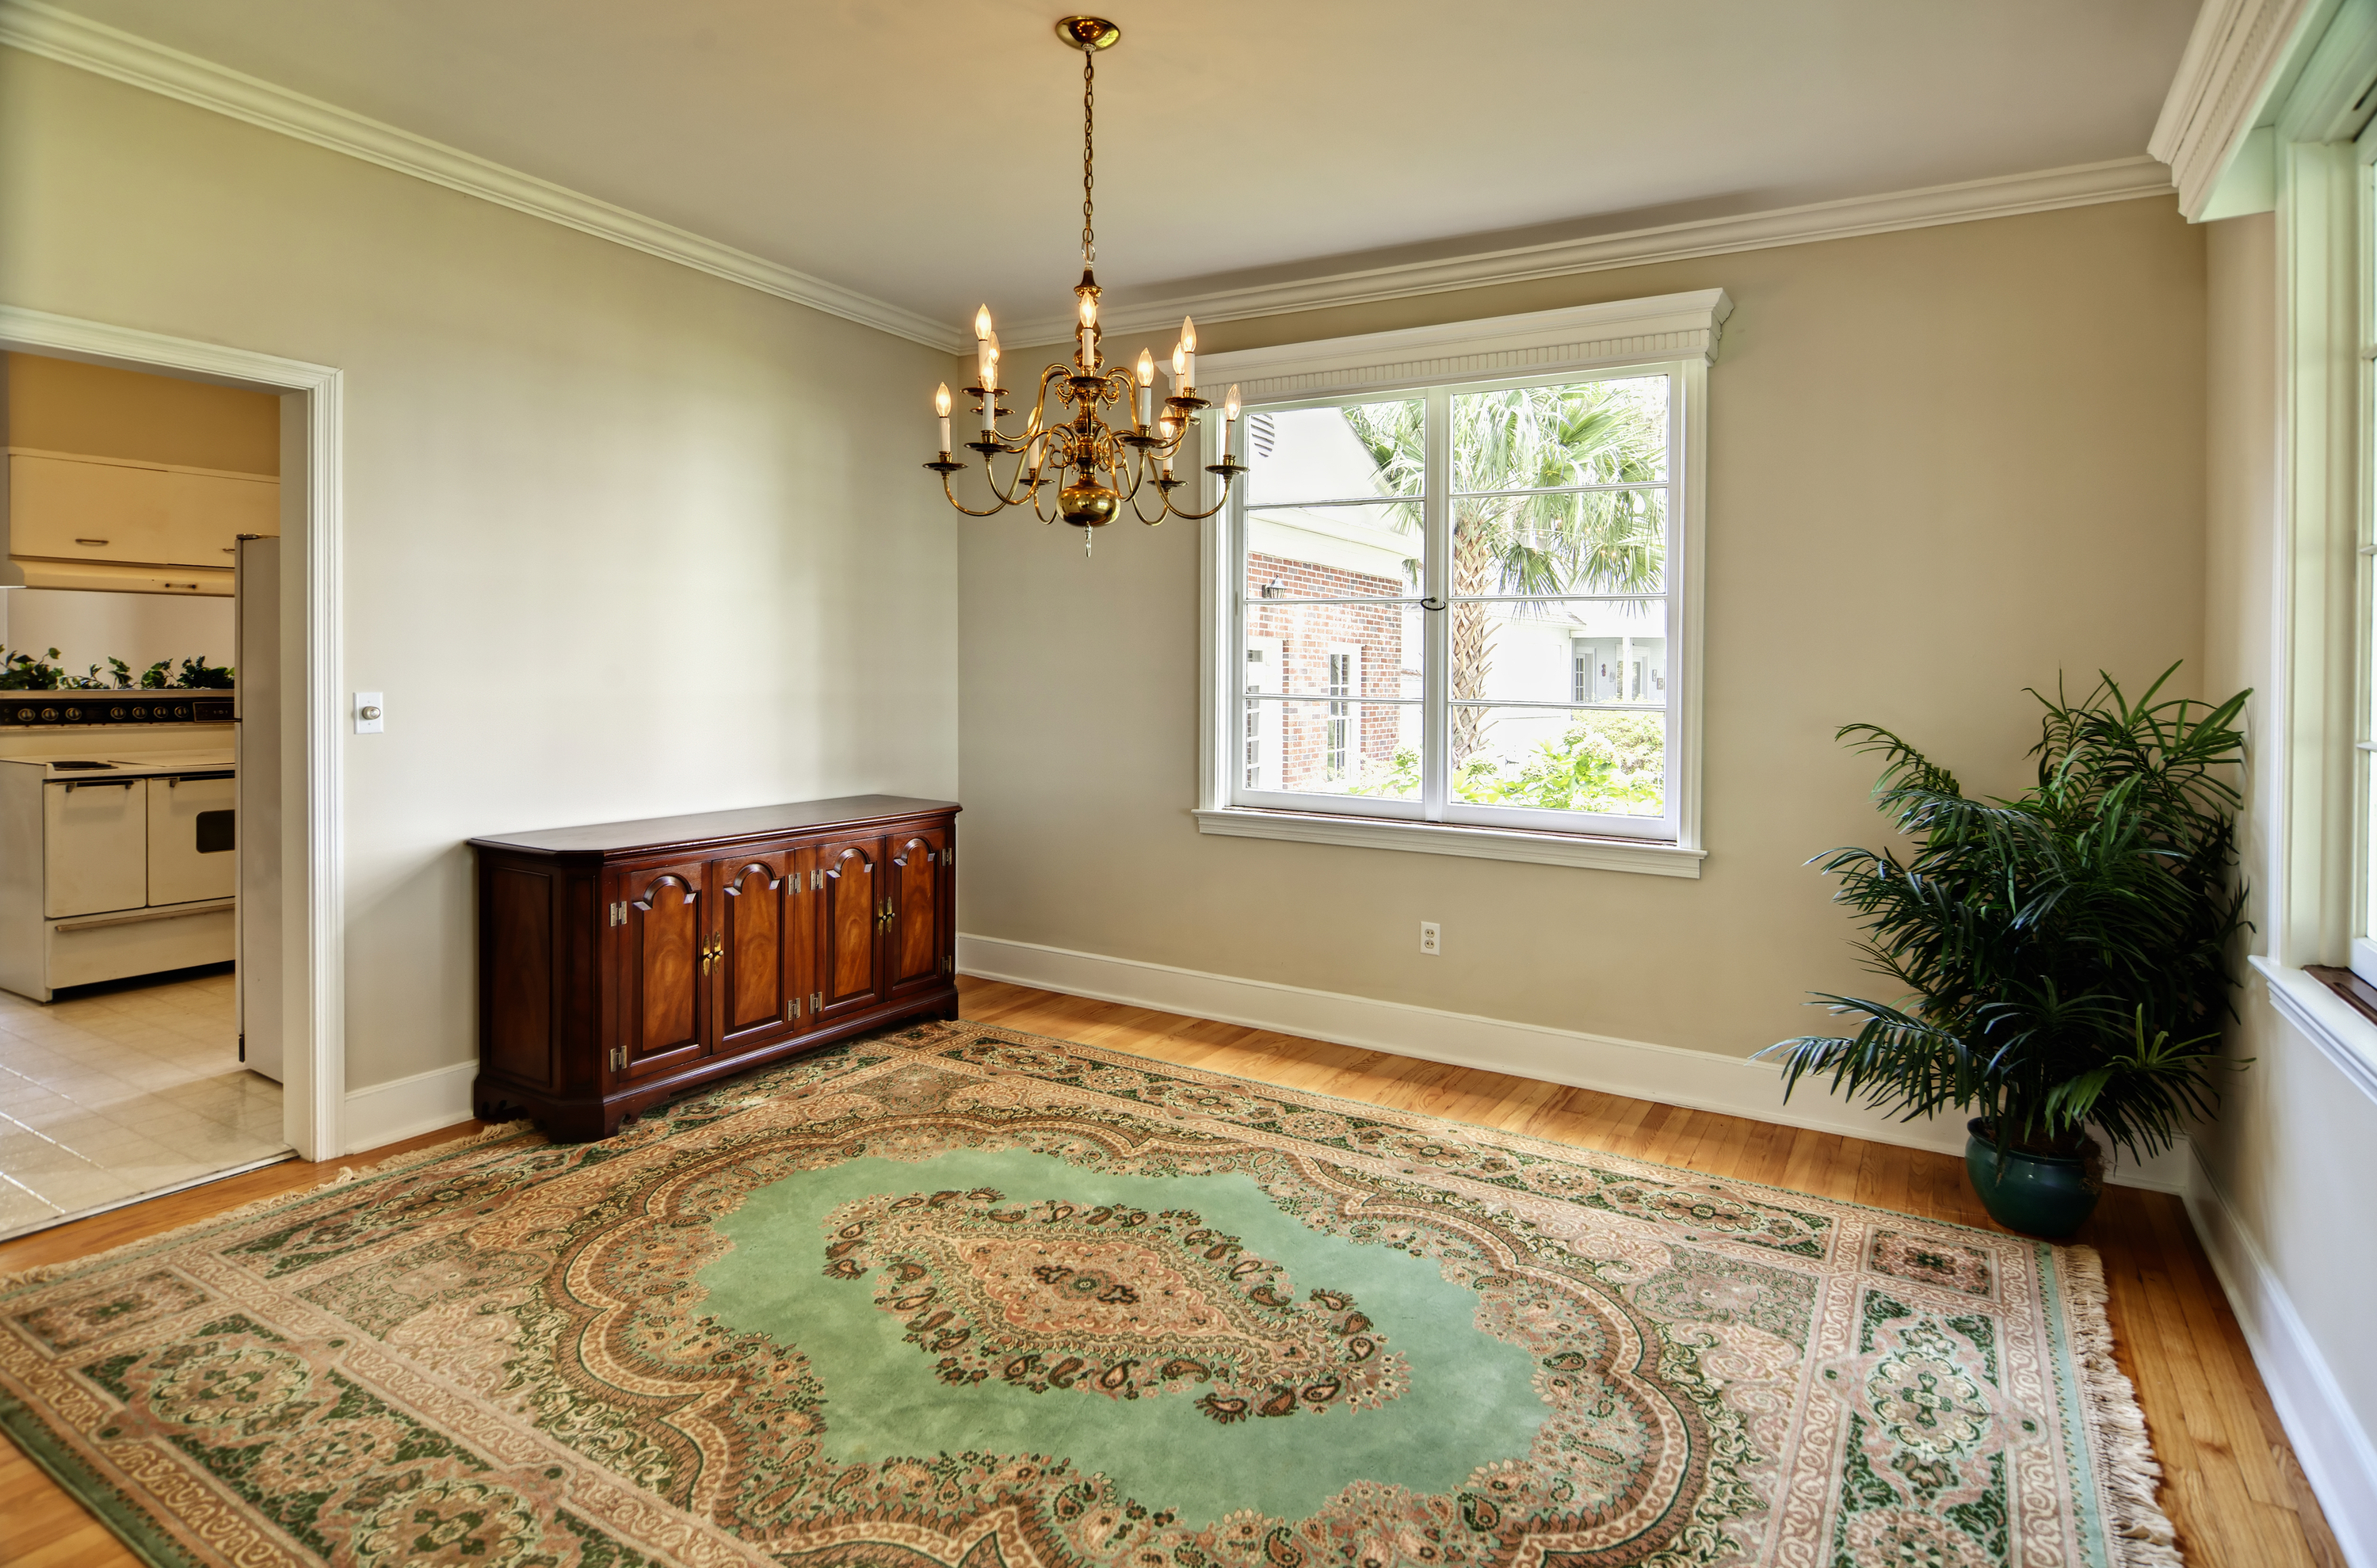 old | old home | old home charm | charm | home | new home | remodel | home design | design